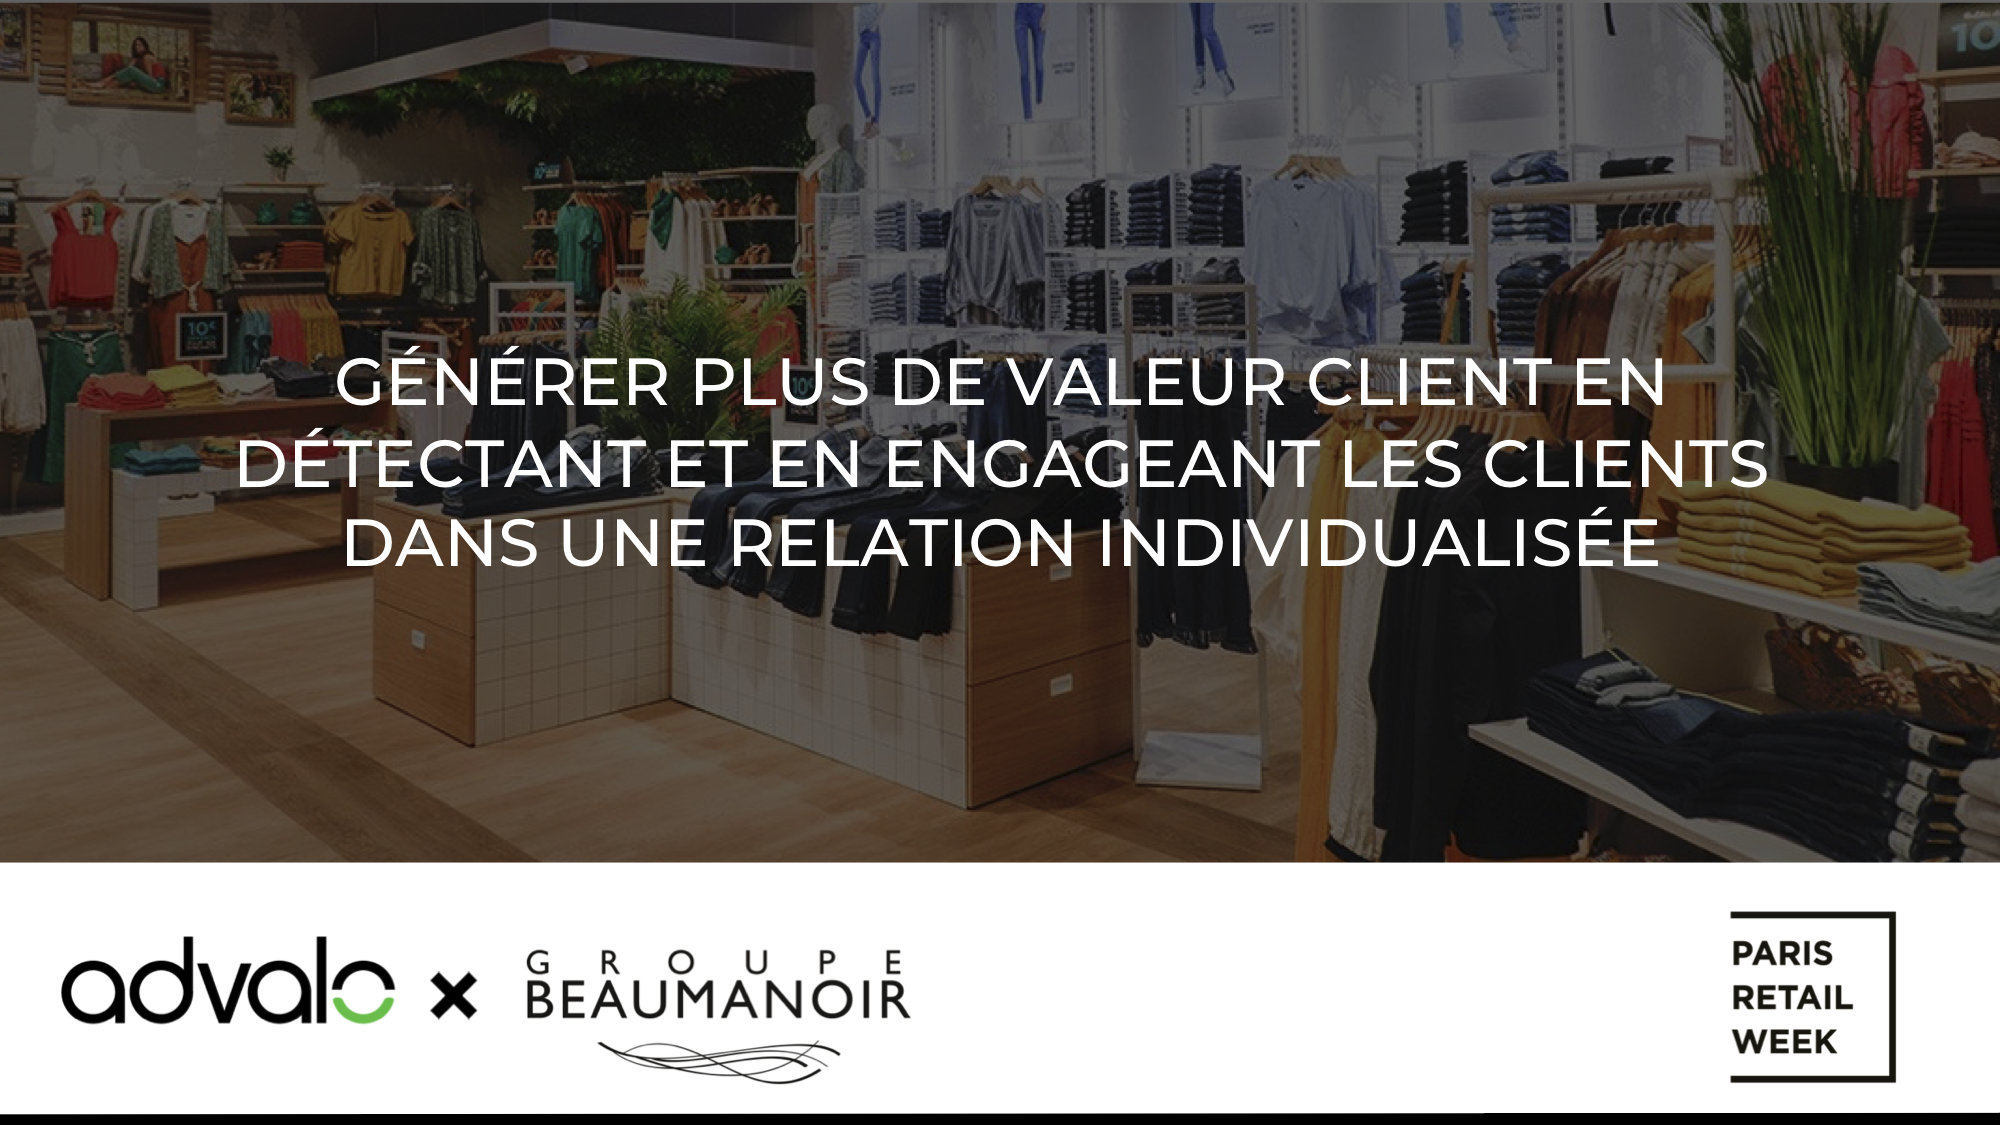 Advalo X Groupe Beaumanoir PRW2019